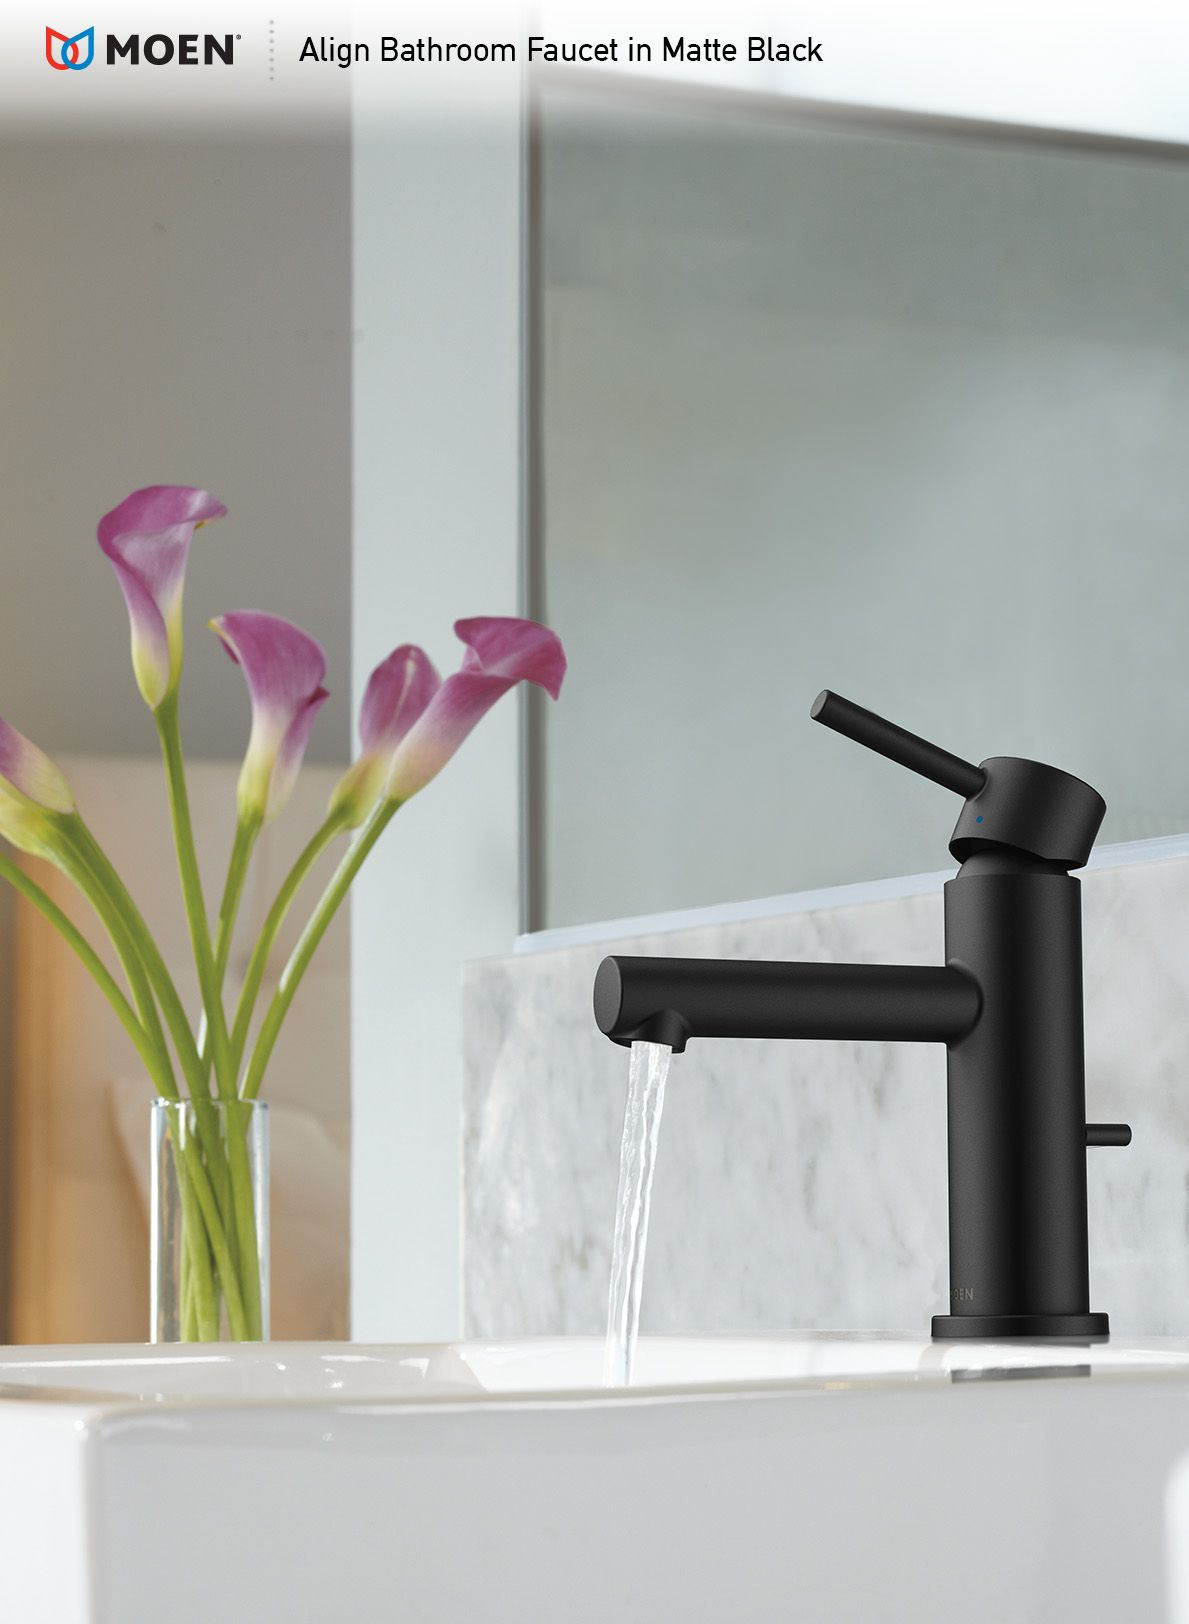 Superieur Add Some Contrast And Simplify Your Bathroomu0027s Look With The Moen Align  Faucetu2014now In A Matte Black Finish.